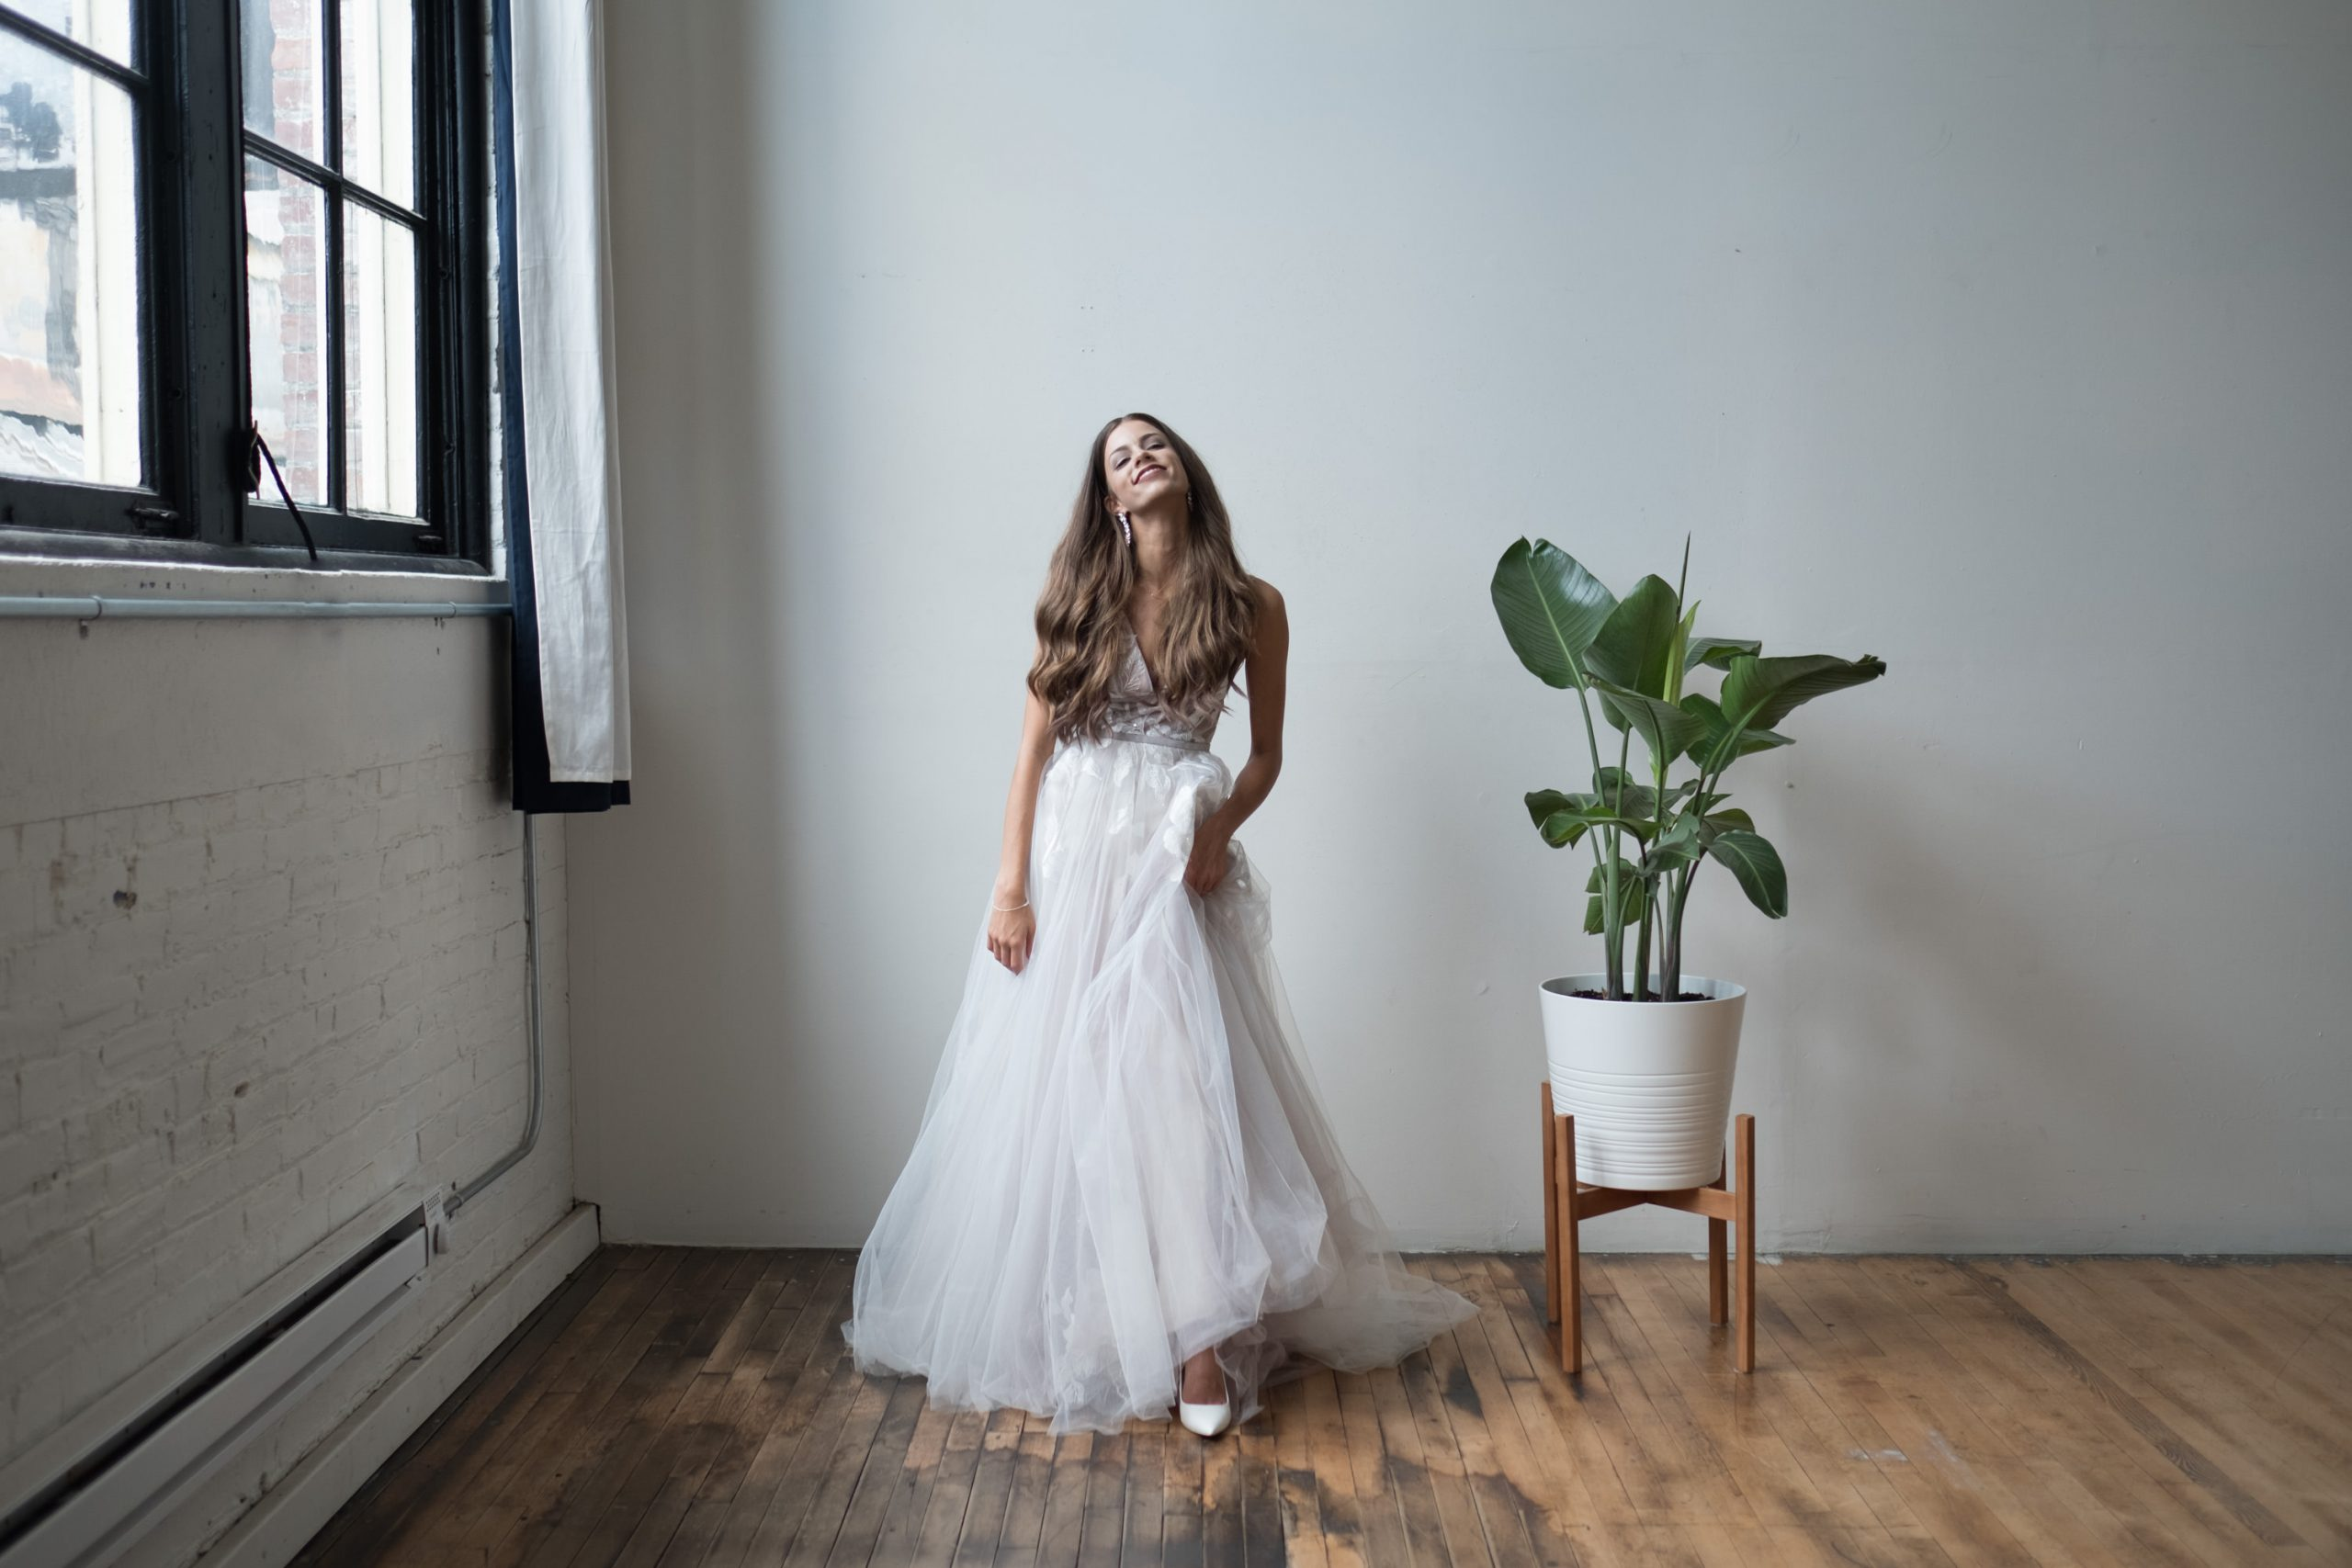 An unedited portrait of a bride that stands between a window and a plant.